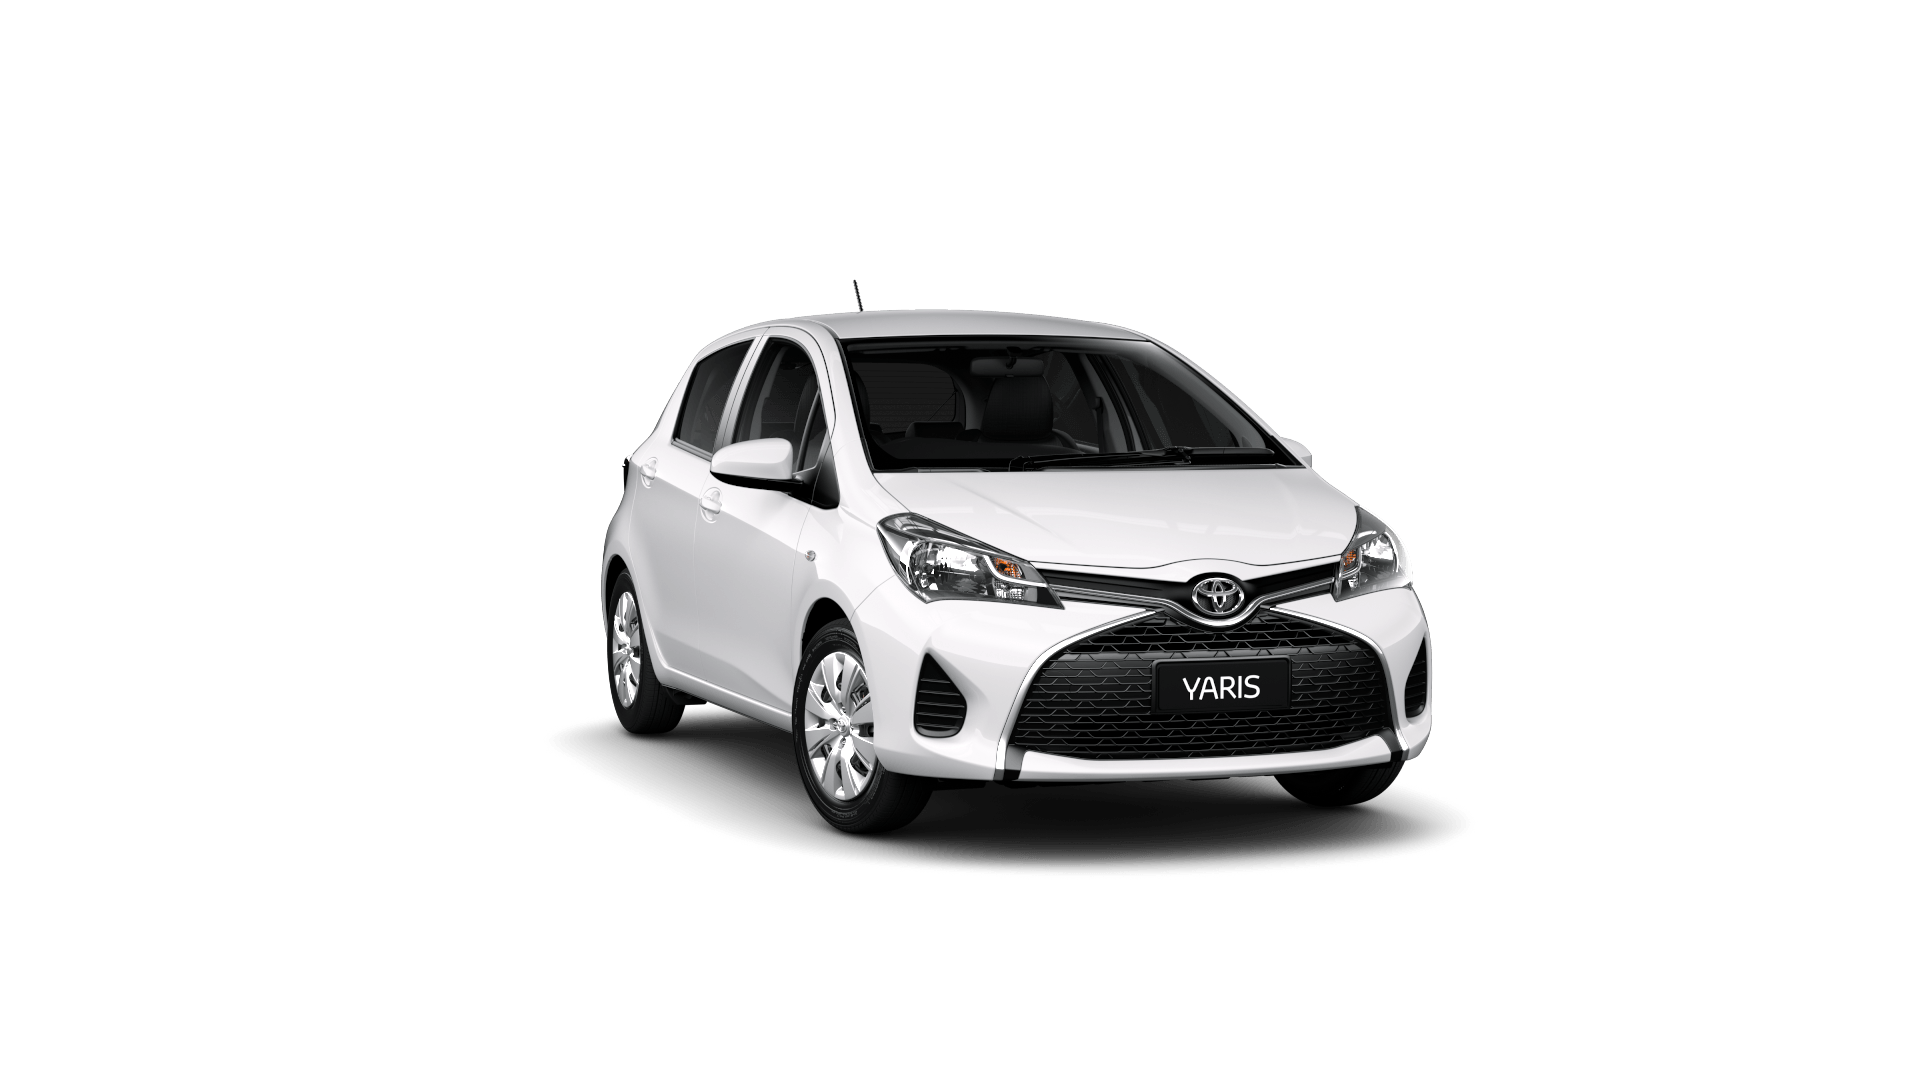 2016 Yaris Ascent Hatch Manual